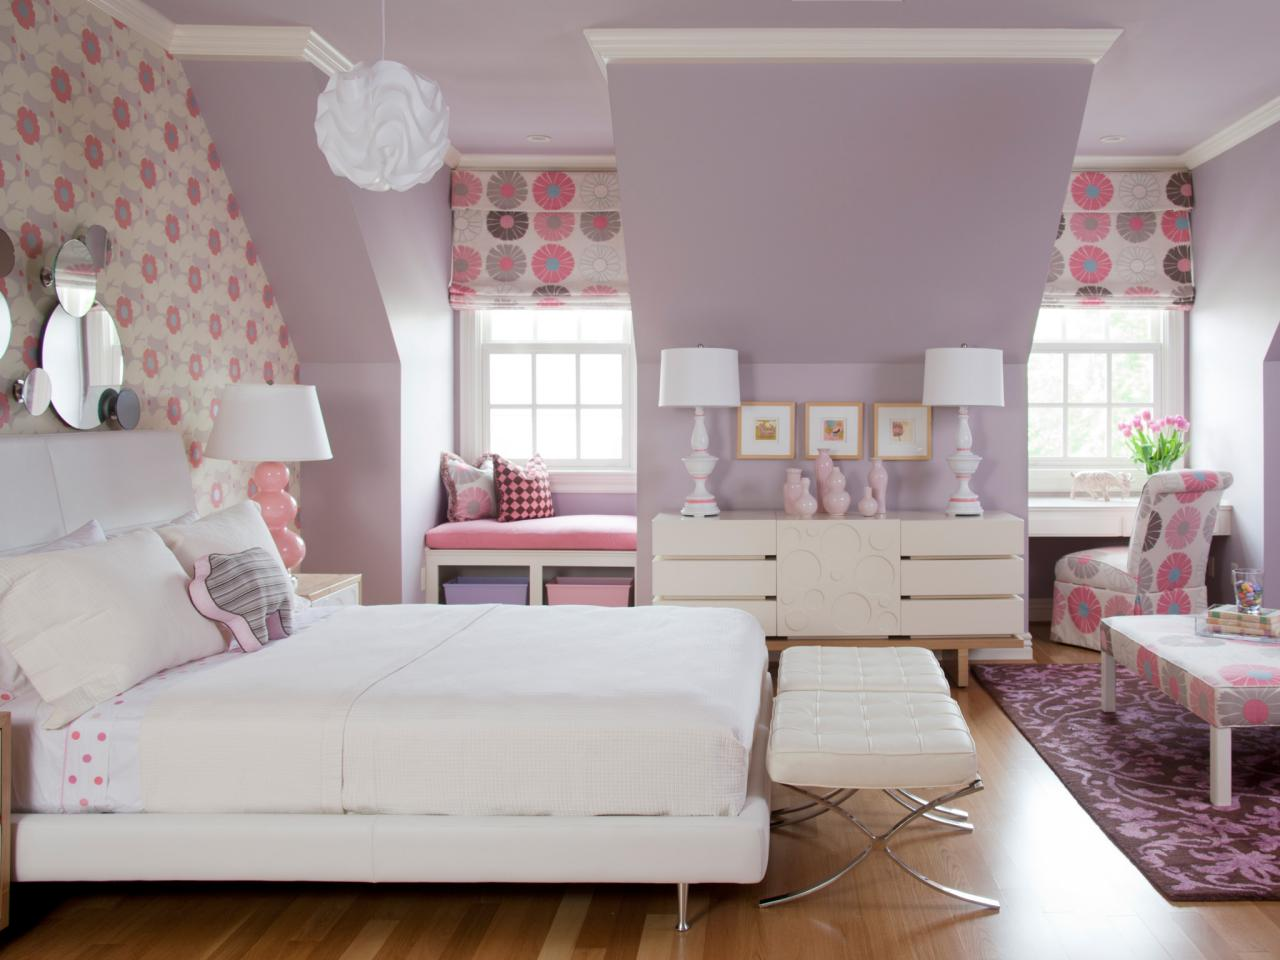 Nice room colors for girls - Coral And Kelly Green Bedroom